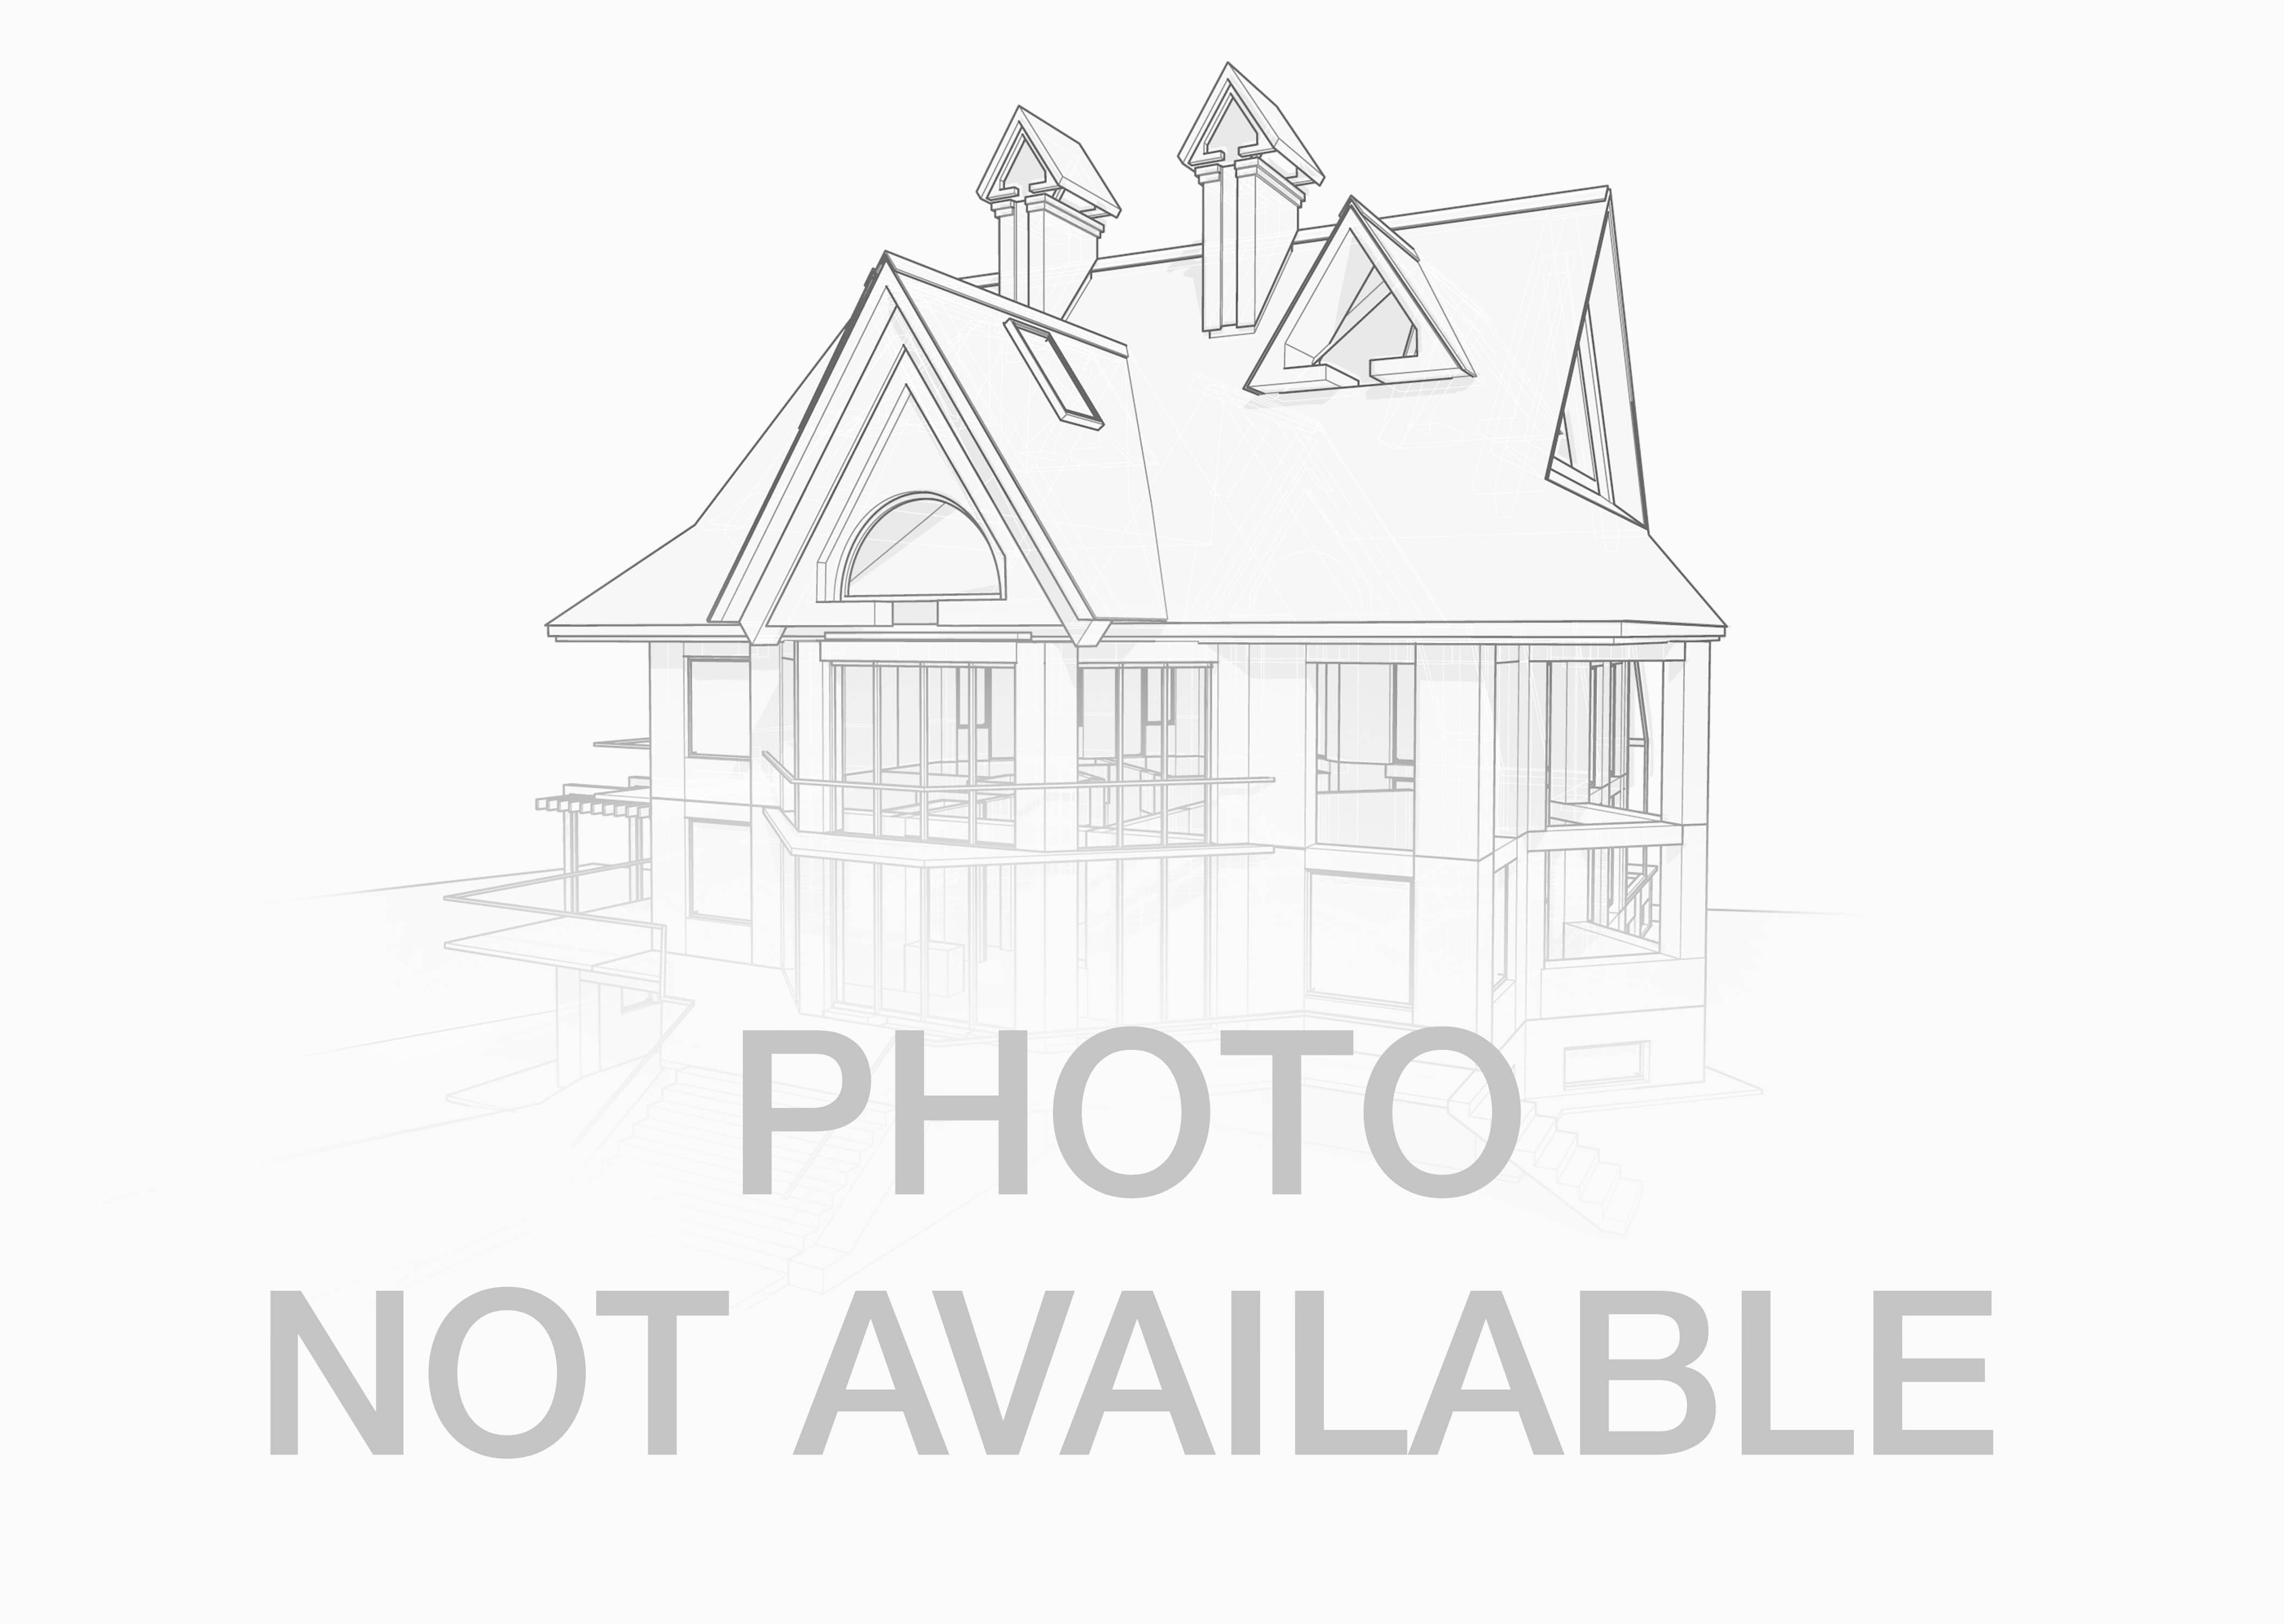 Listings Search Results from LaDawn Knicely with Hometown Realty Group